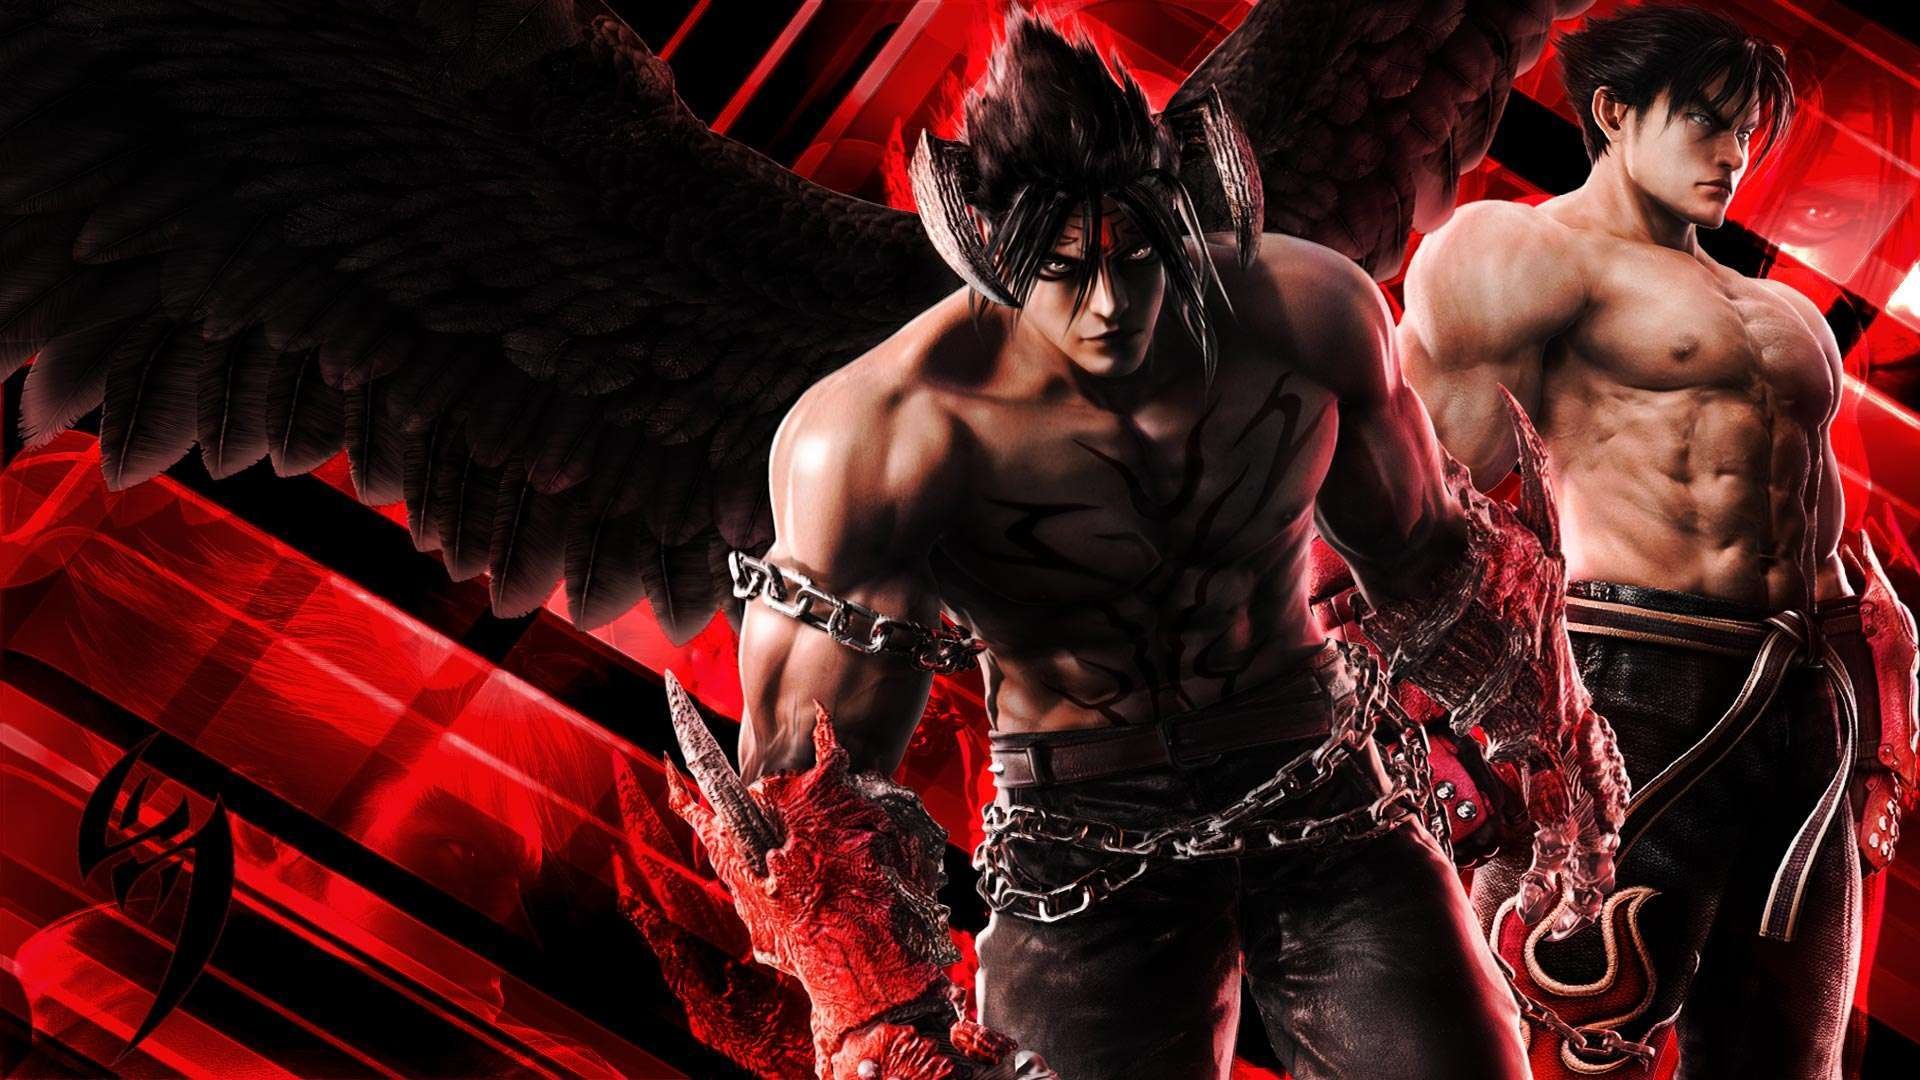 Tekken 7 Hd Wallpaper 1080p